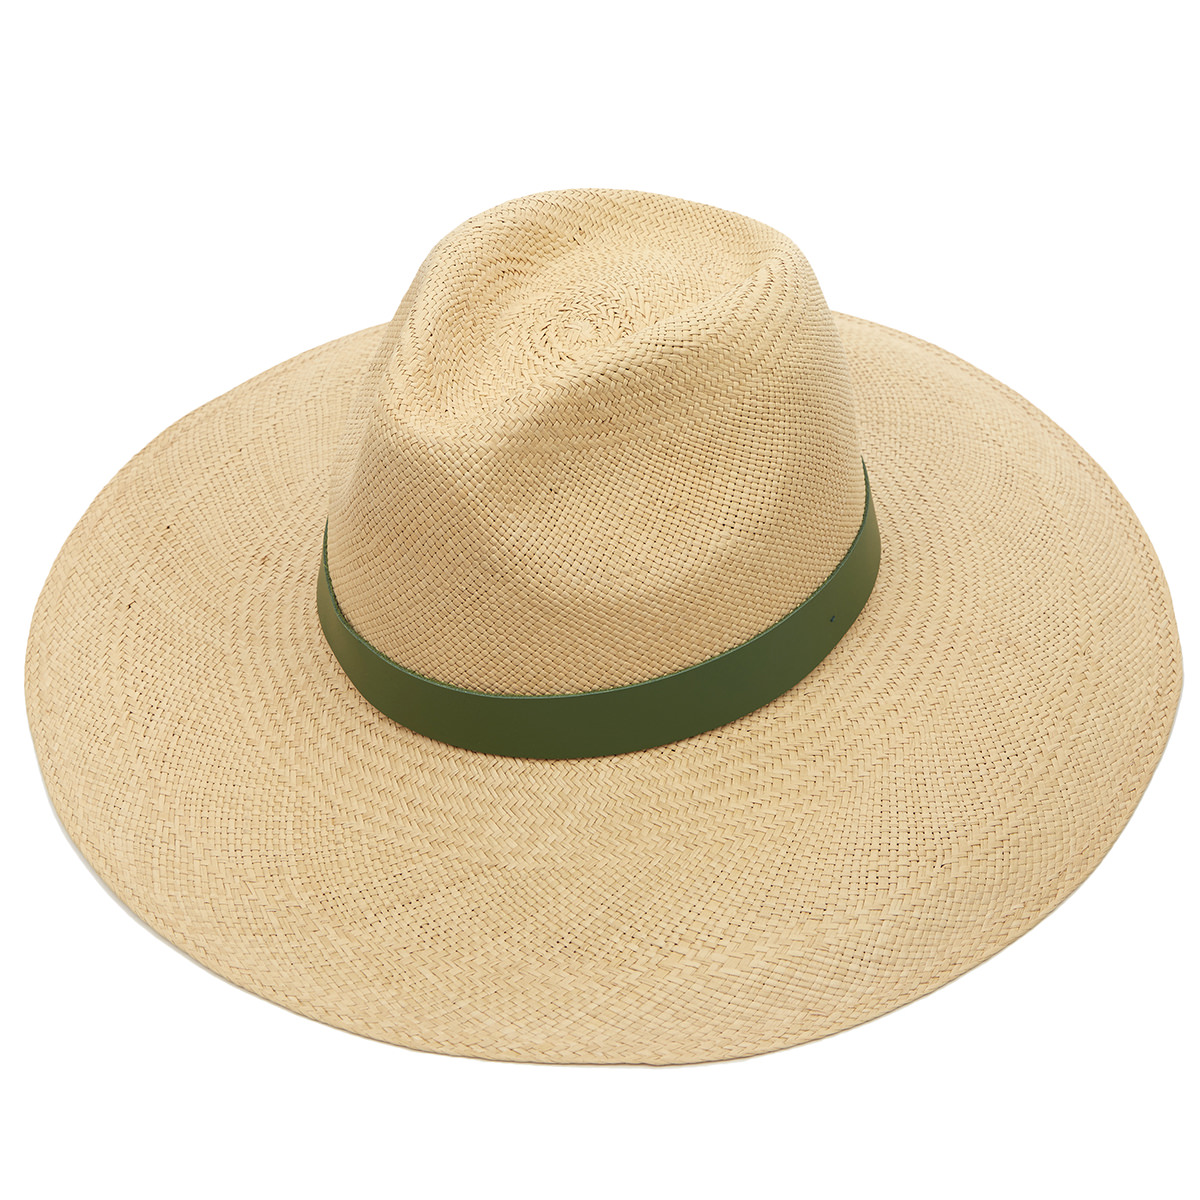 Jessica Wide Brim Panama Hat with Leather Band 61